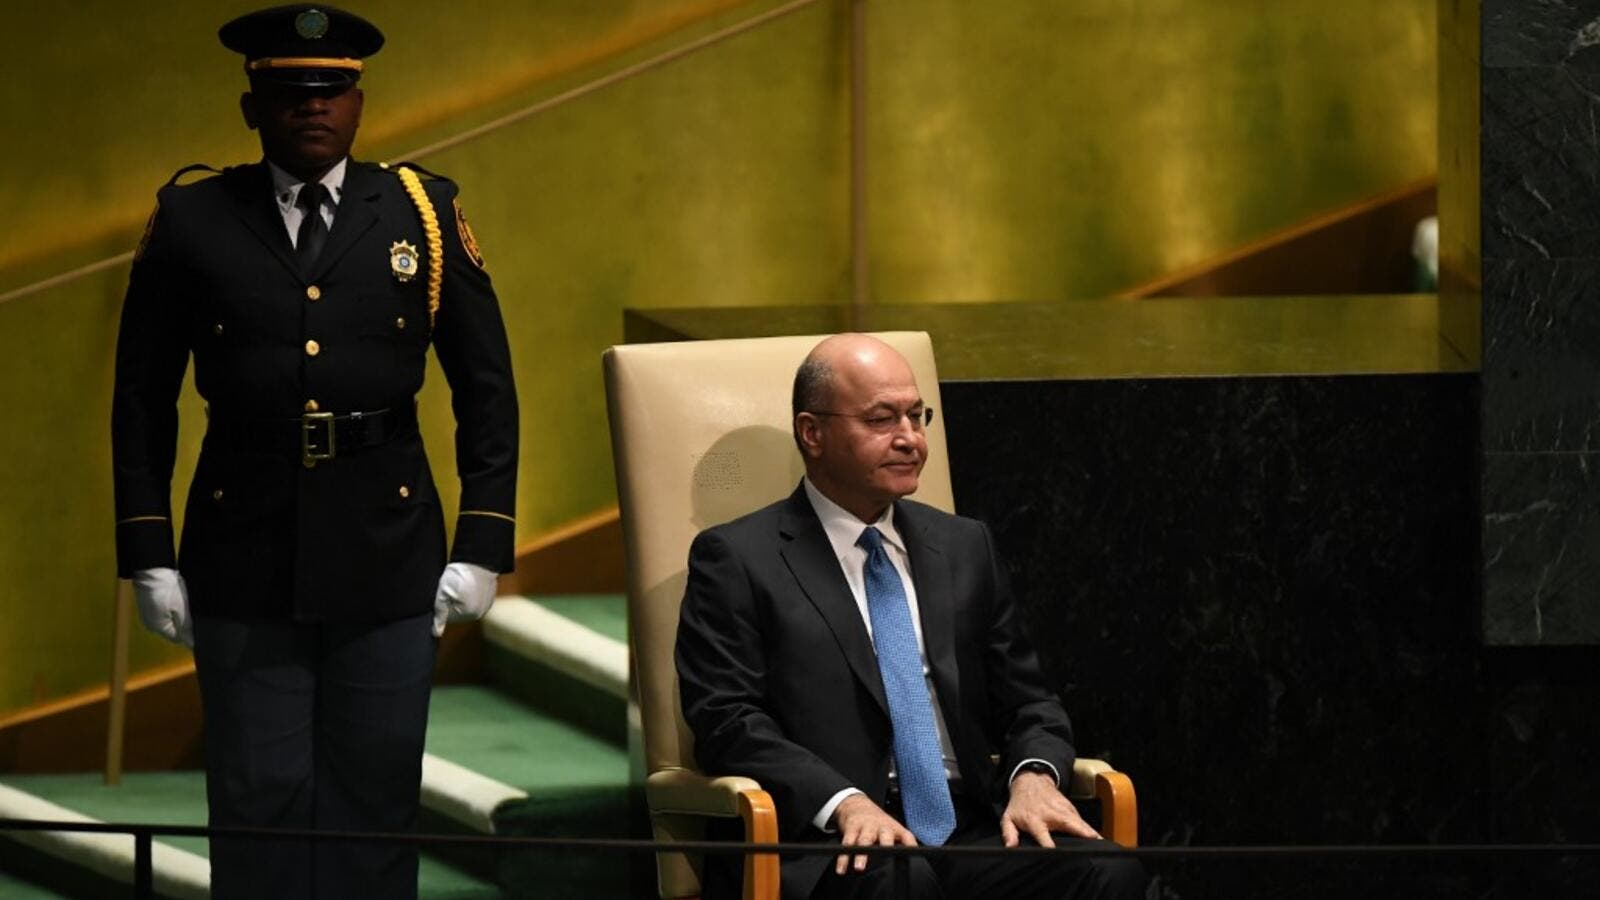 Barham Saleh, President of Iraq waits to speak during the 74th Session of the General Assembly at the United Nations headquarters in New York on September 25, 2019. (TIMOTHY A. CLARY / AFP)